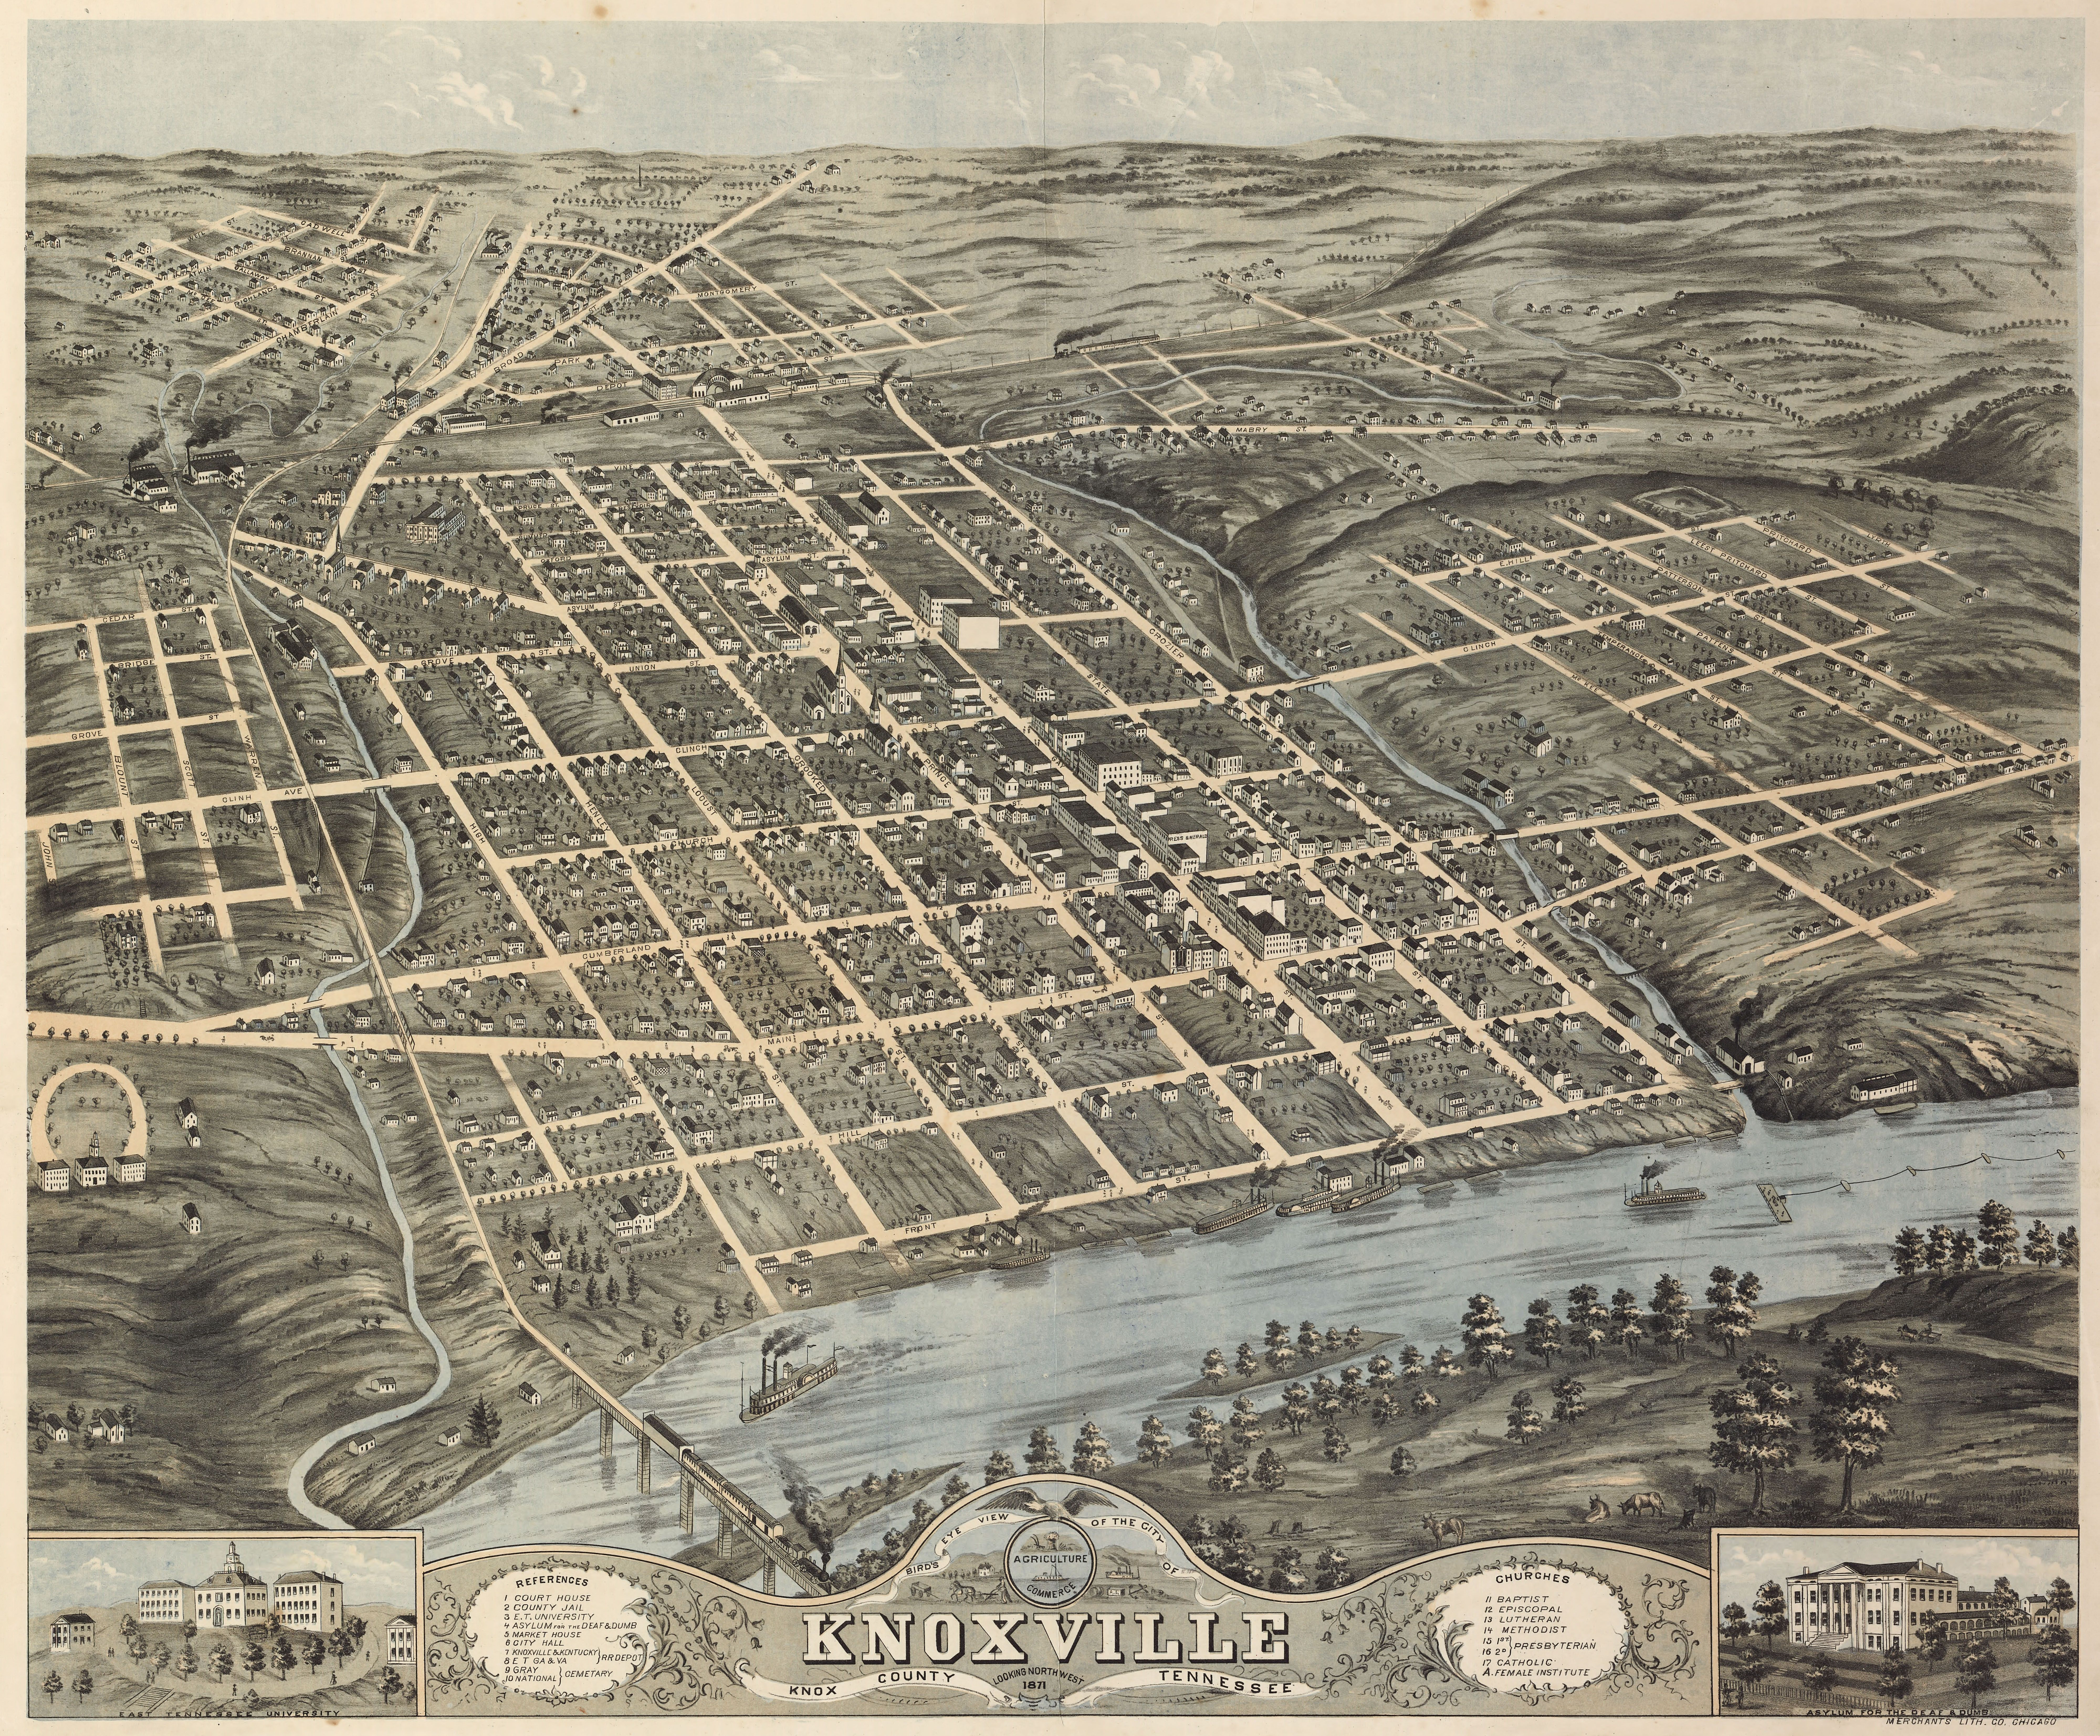 old map of knoxville tennessee - Google Search | Knoxville History Knoxville Tn Map Illustration on louisville ky map, greeneville tn map, baton rouge la map, richmond va map, alabama tn map, athens ga map, gainesboro tn map, coalfield tn map, west tn river map, knoxville tennessee, great smoky mountains tn map, tallahassee fl map, mt carmel tn map, university of memphis tn map, raleigh nc map, smith co tn map, nashville tennessee usa map, jackson tn map, tn county map, abingdon tn map,